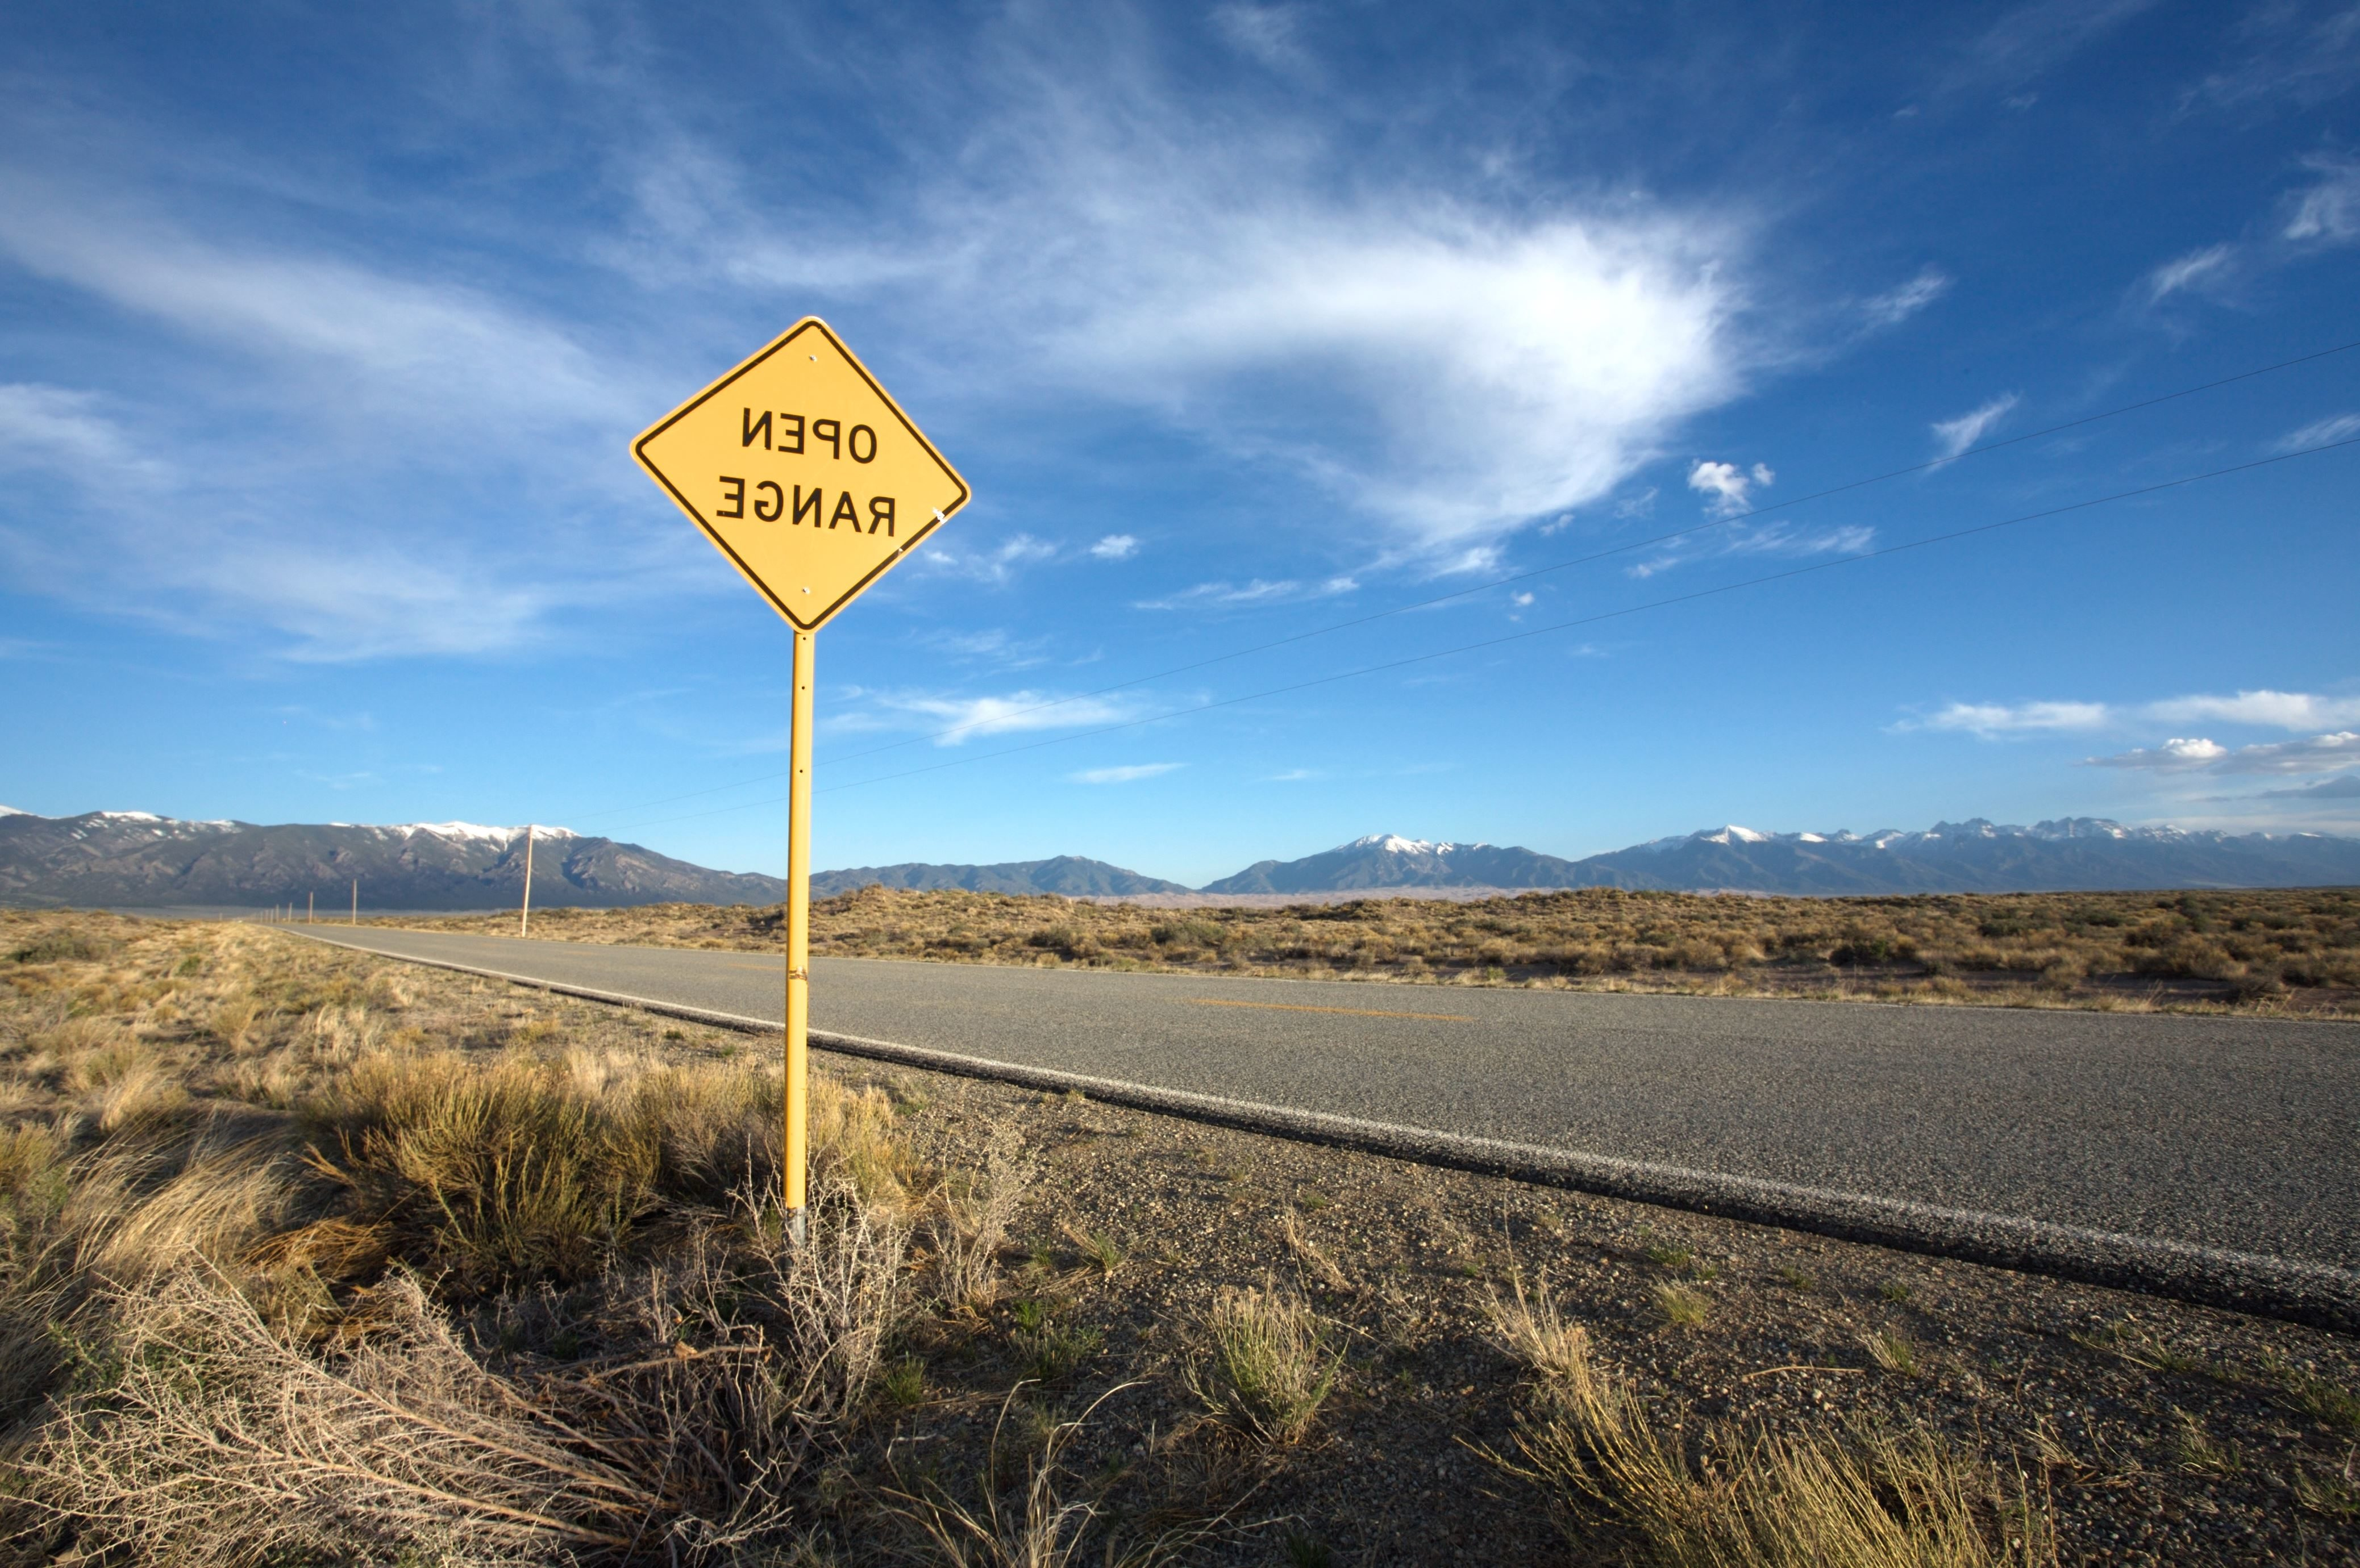 Free picture guidance highway road sign desert